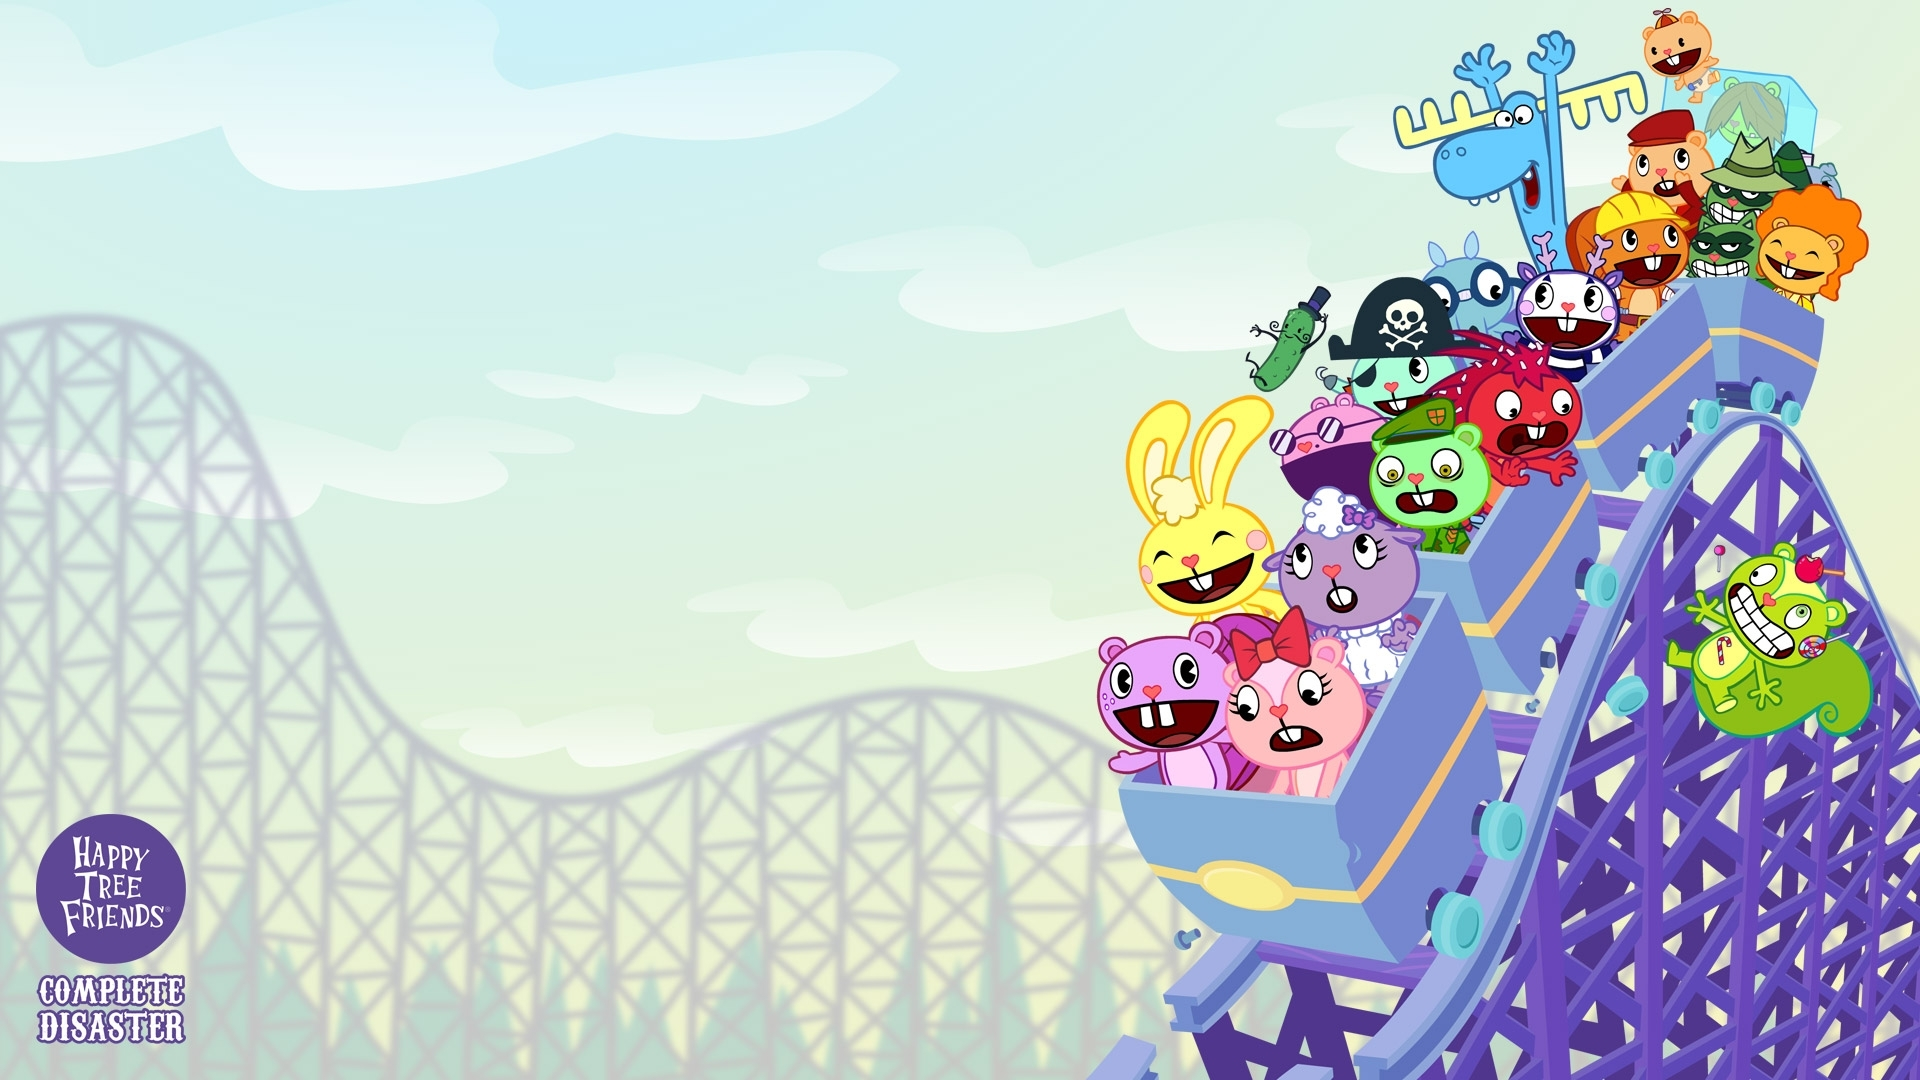 happy tree friends: complete disaster wallpapers - happy tree